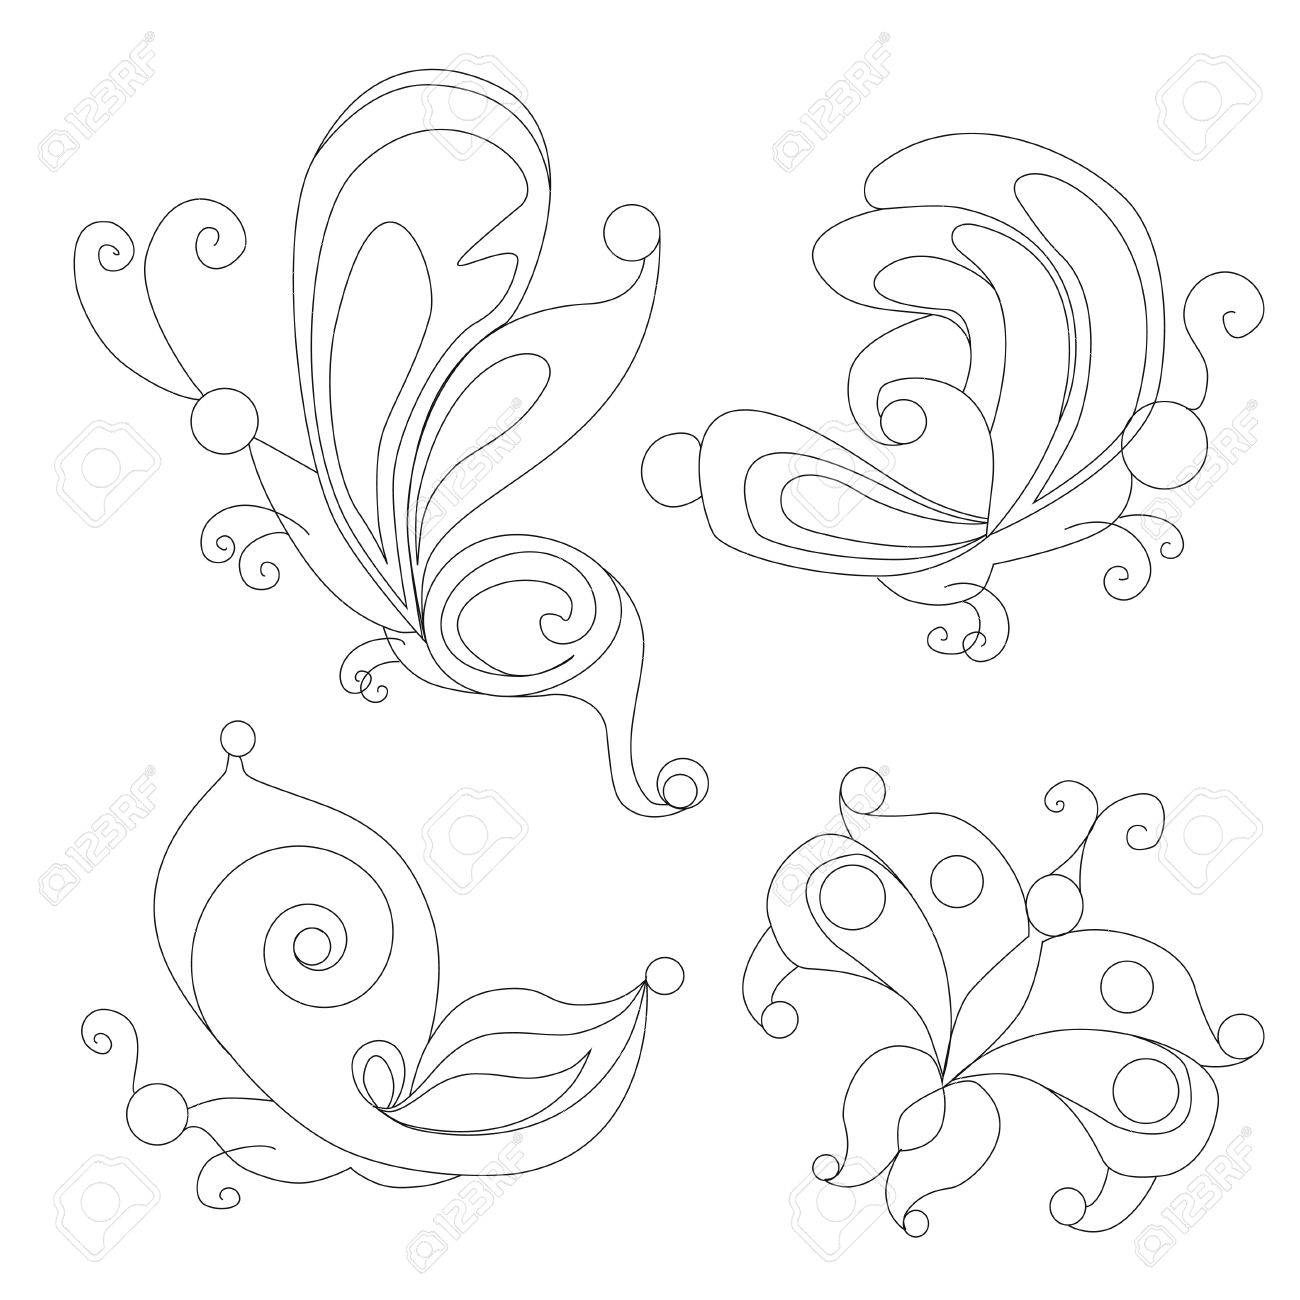 Butterfly. Coloring Books For Adults. Royalty Free Cliparts, Vectors ...